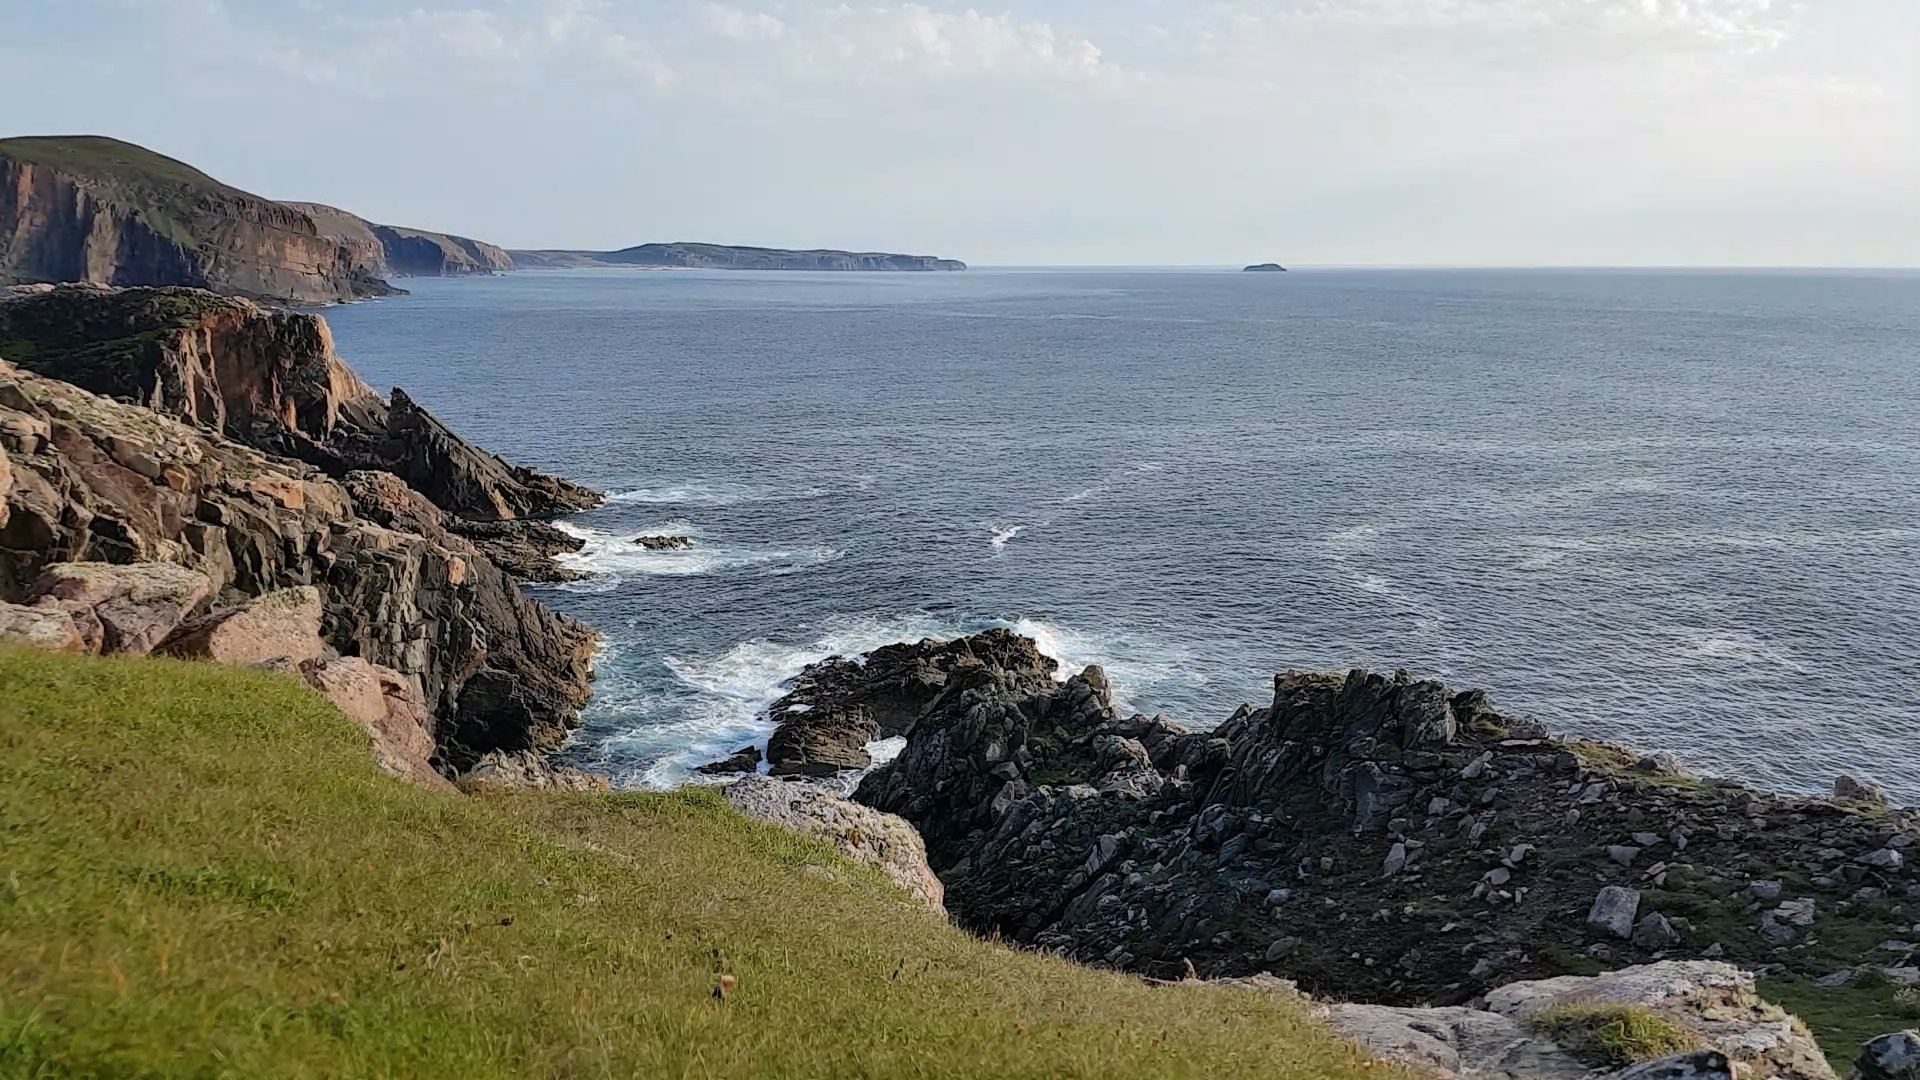 The rocky shoreline just south of Cape Wrath, NW Scotland